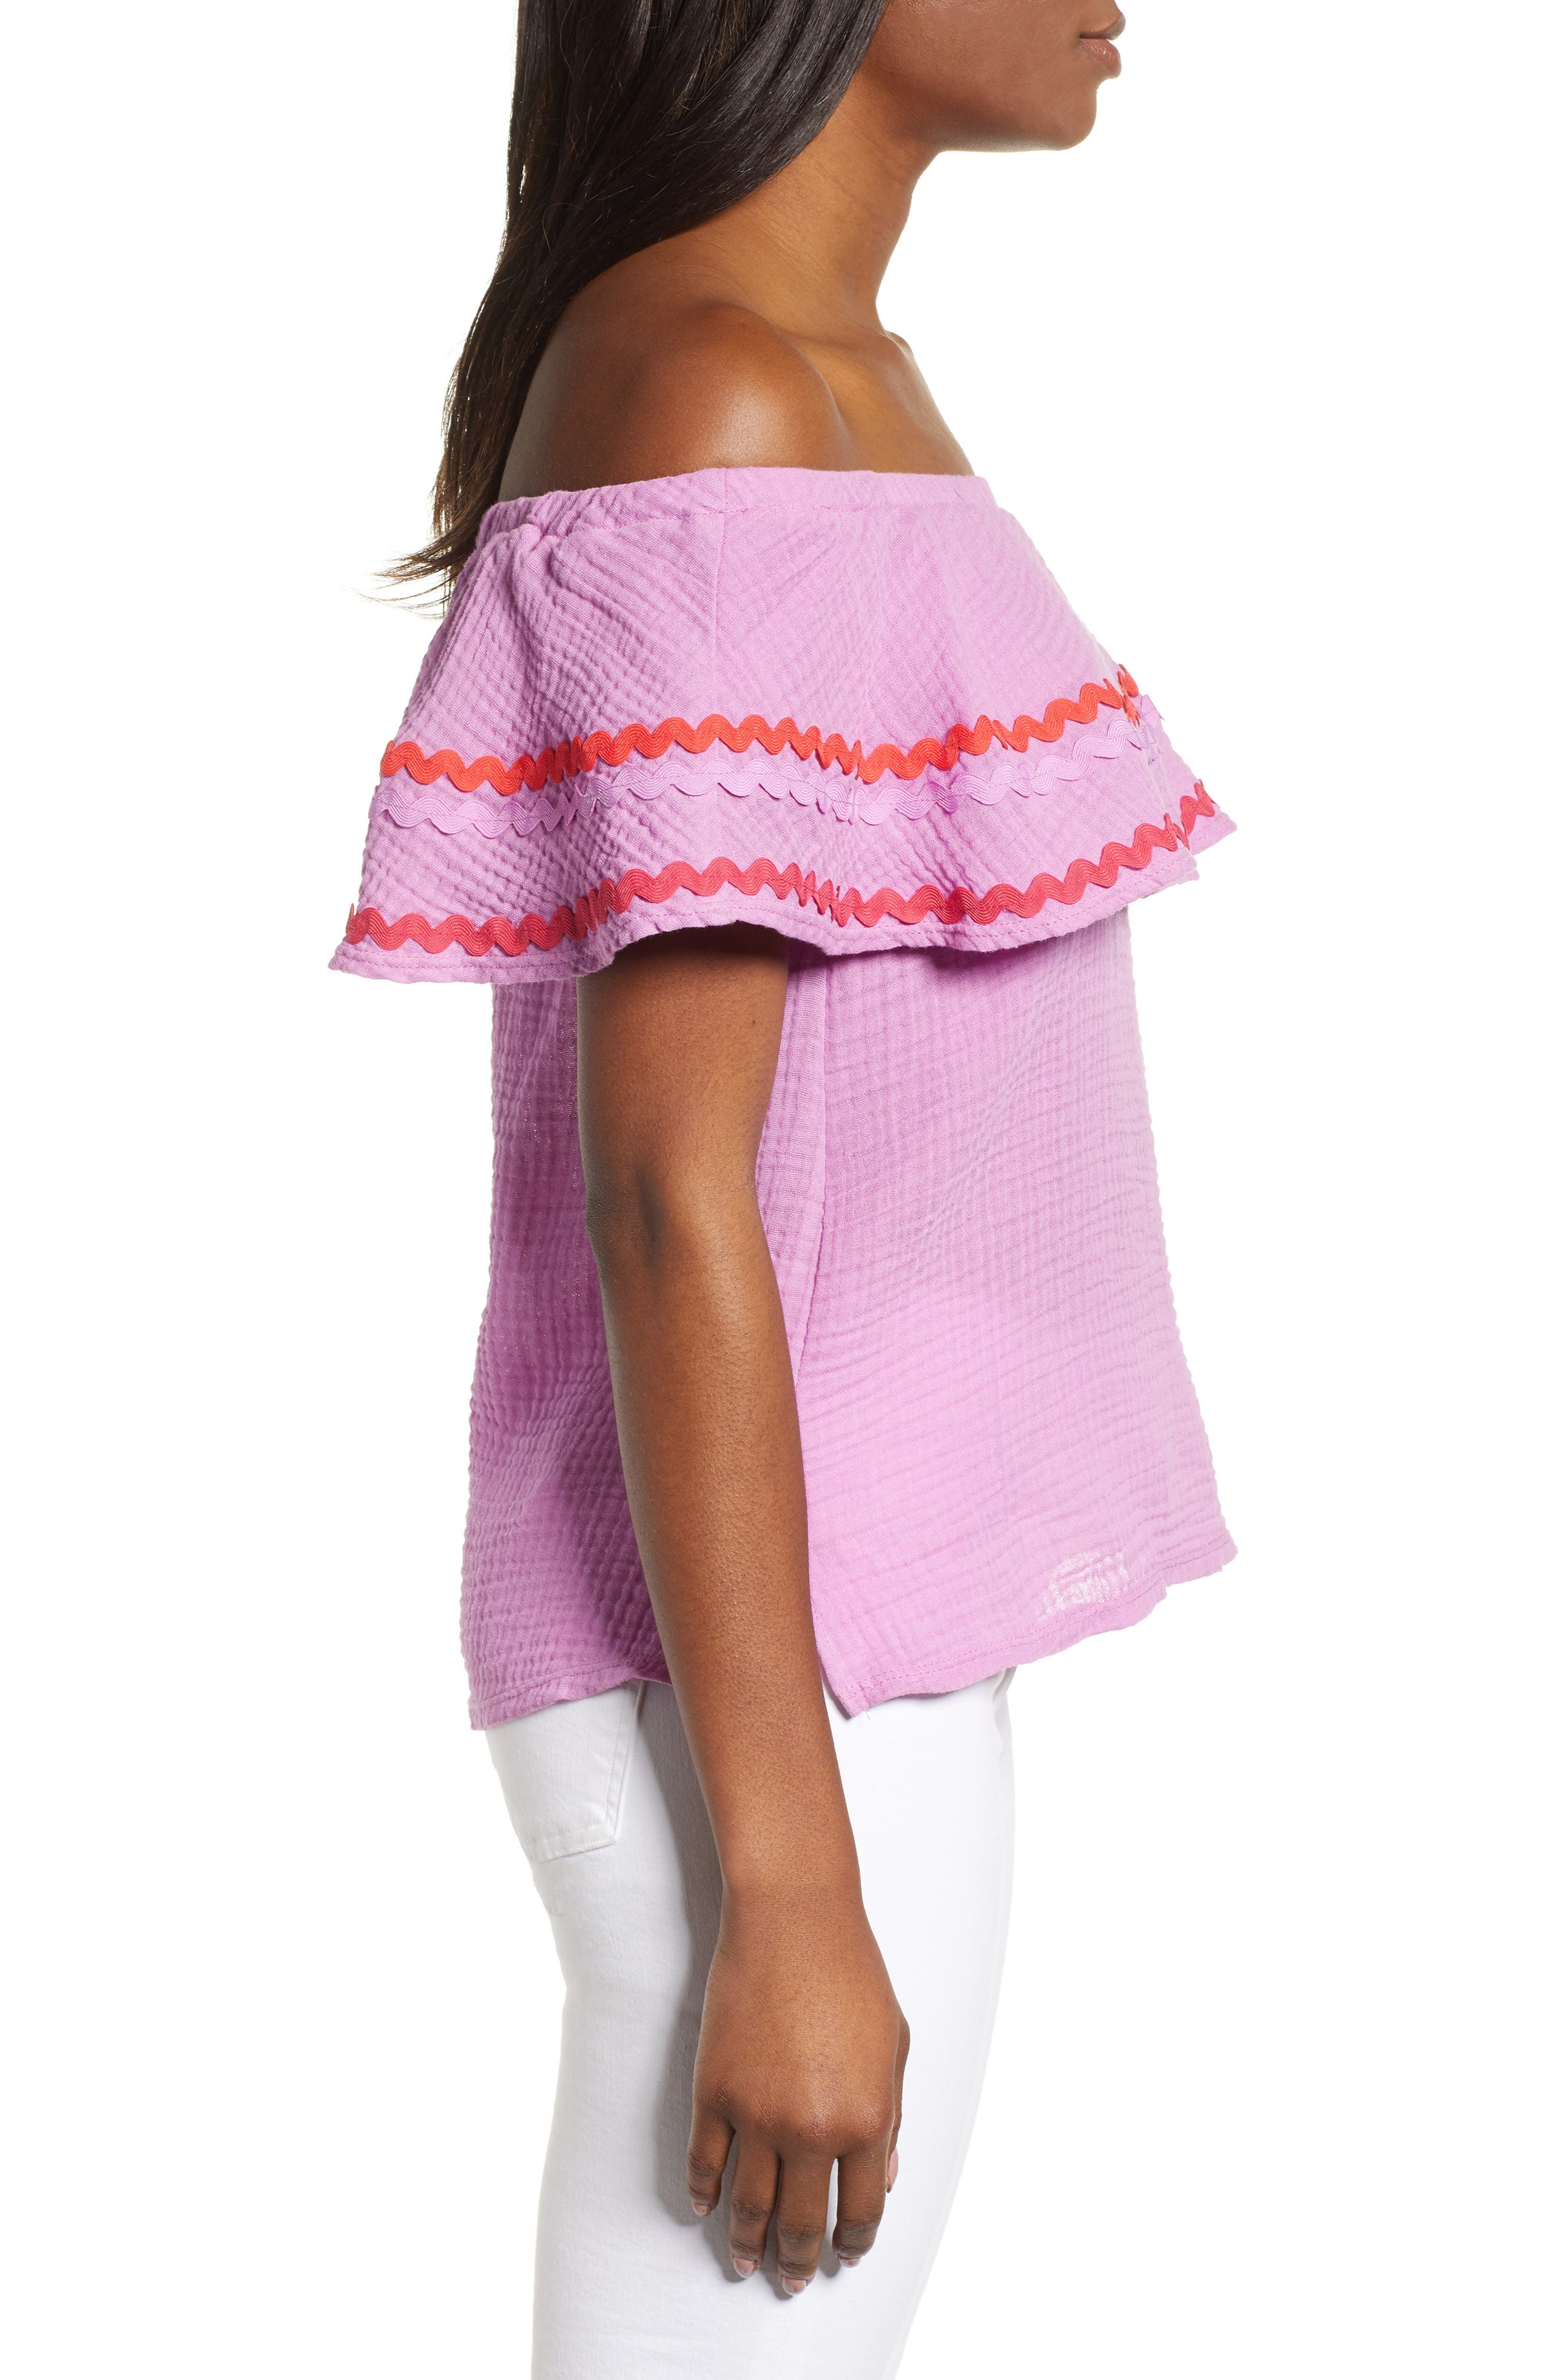 GIBSON, x Hi Sugarplum! Santa Fe Rickrack Off the Shoulder Top, Alternate thumbnail 3, color, PEONY